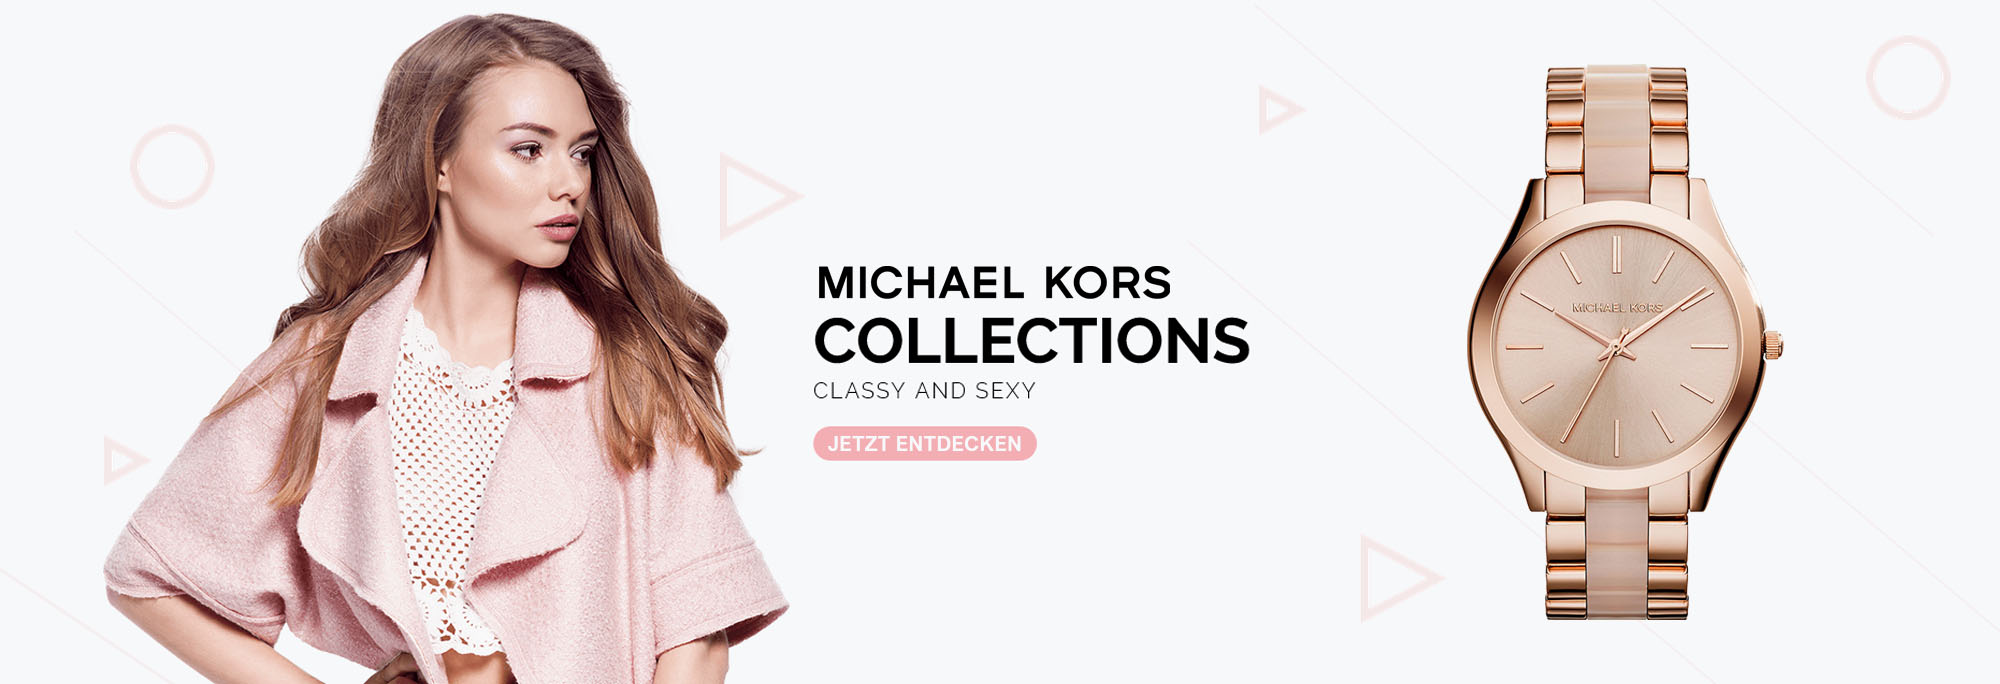 Michael-Kors-Slider-20175a70901865292